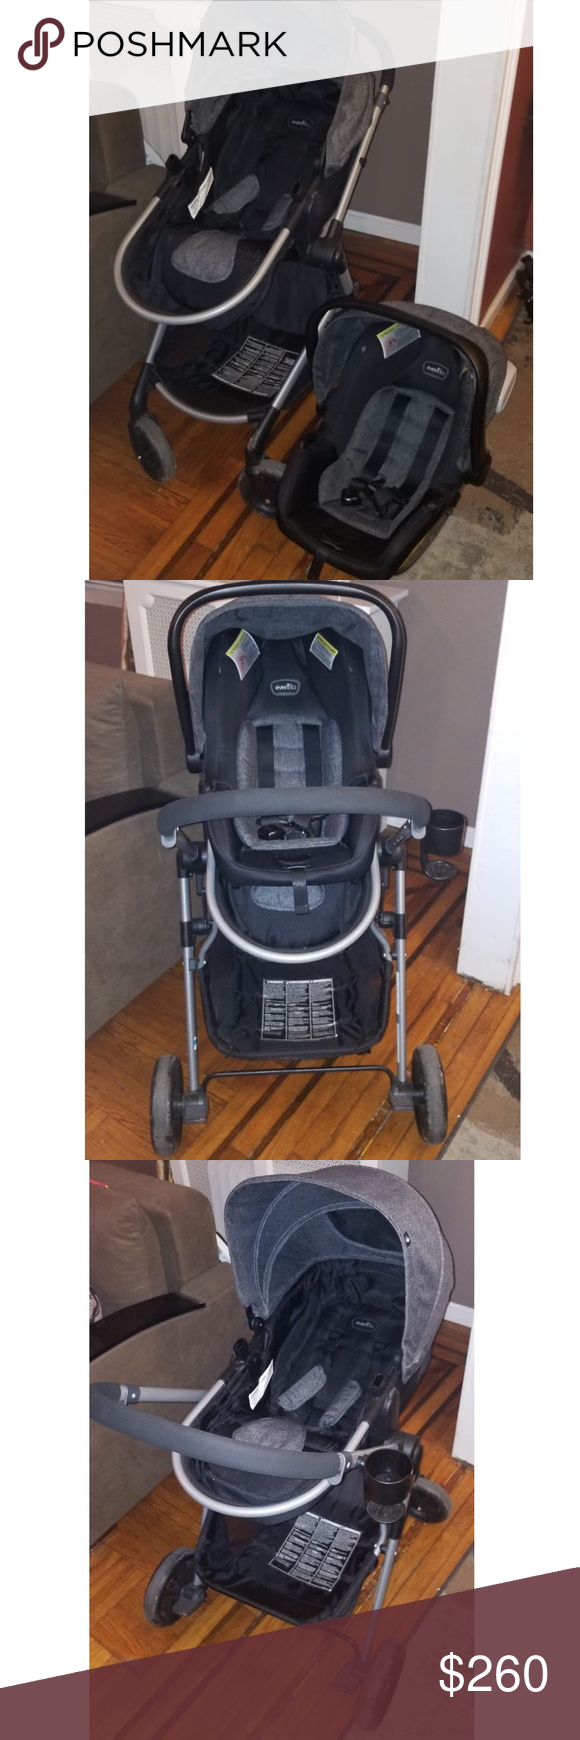 Evenflo Pivot Travel System This 3in1 stroller solution